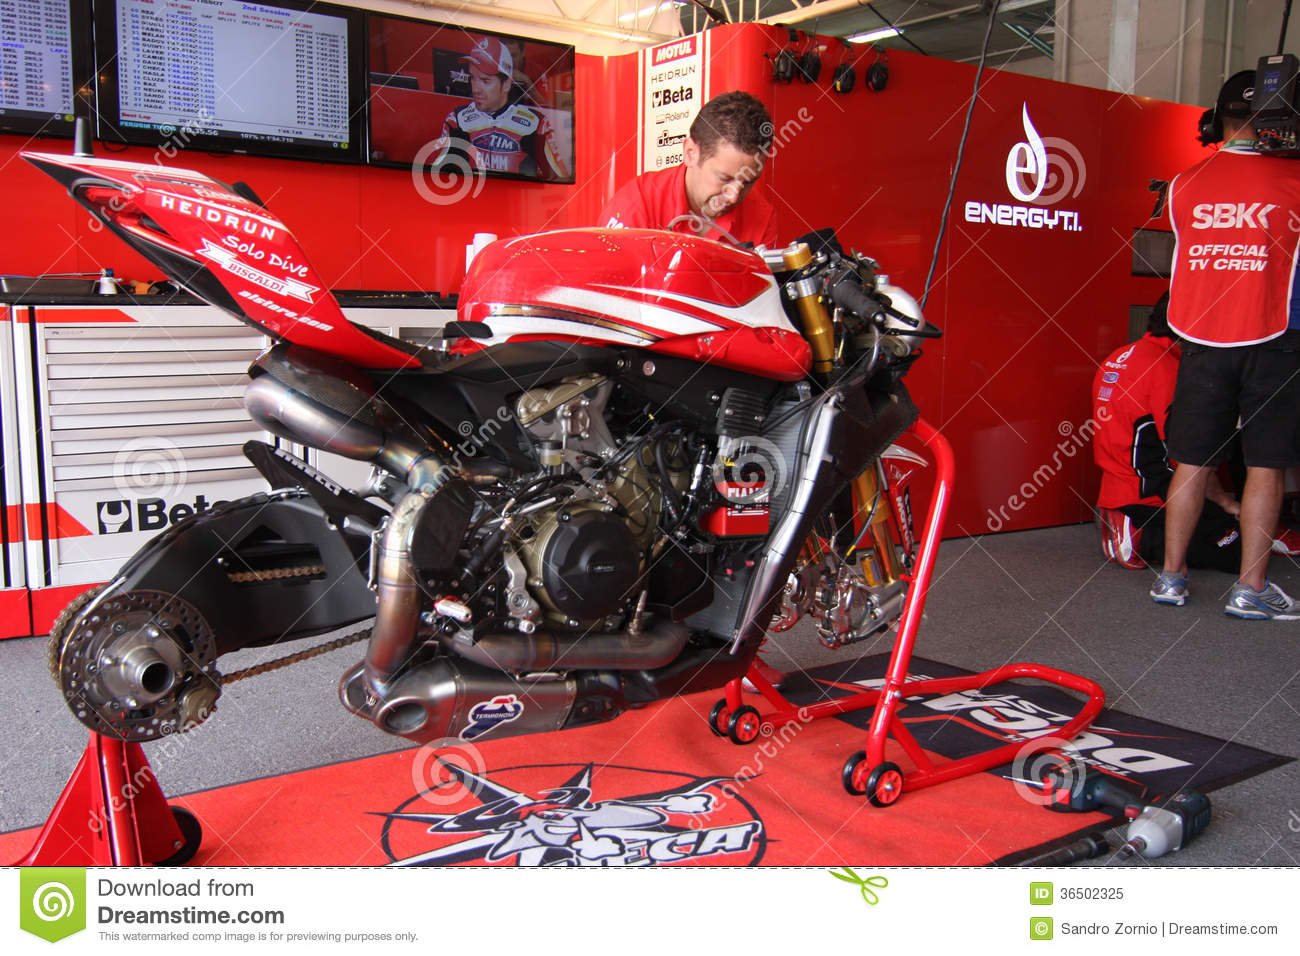 Ducati Panigale Official Racing Team WSBK Editorial Image - Image: 36502325